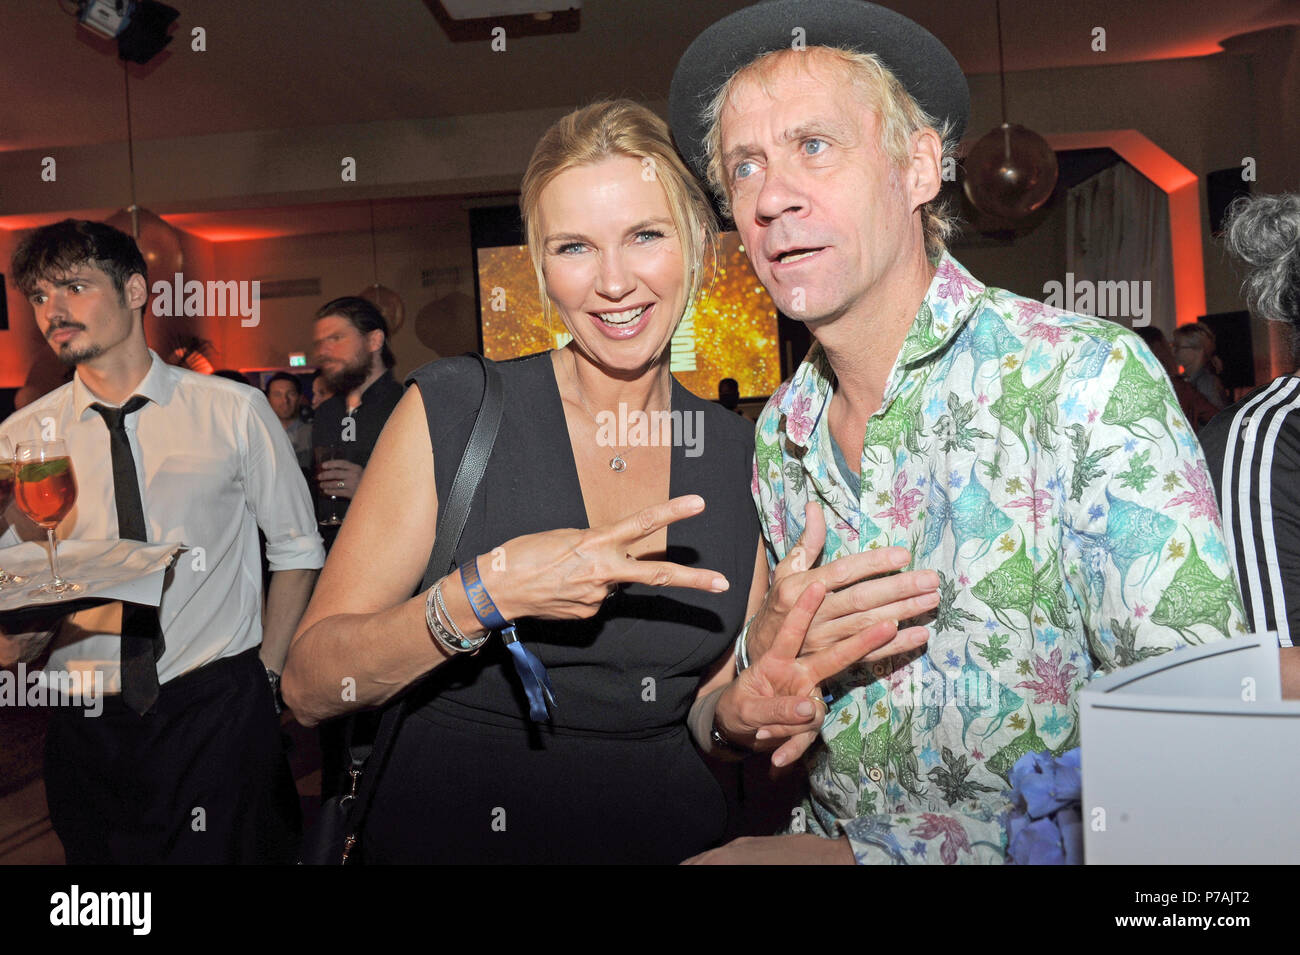 Munich, Germany. 02nd July, 2018. Actress Veronica Ferrs and director Thomas Stiller at the reception on the occasion of Filmfest Munich at Cafe Reitschule. Credit: Ursula Düren/dpa/Alamy Live News - Stock Image